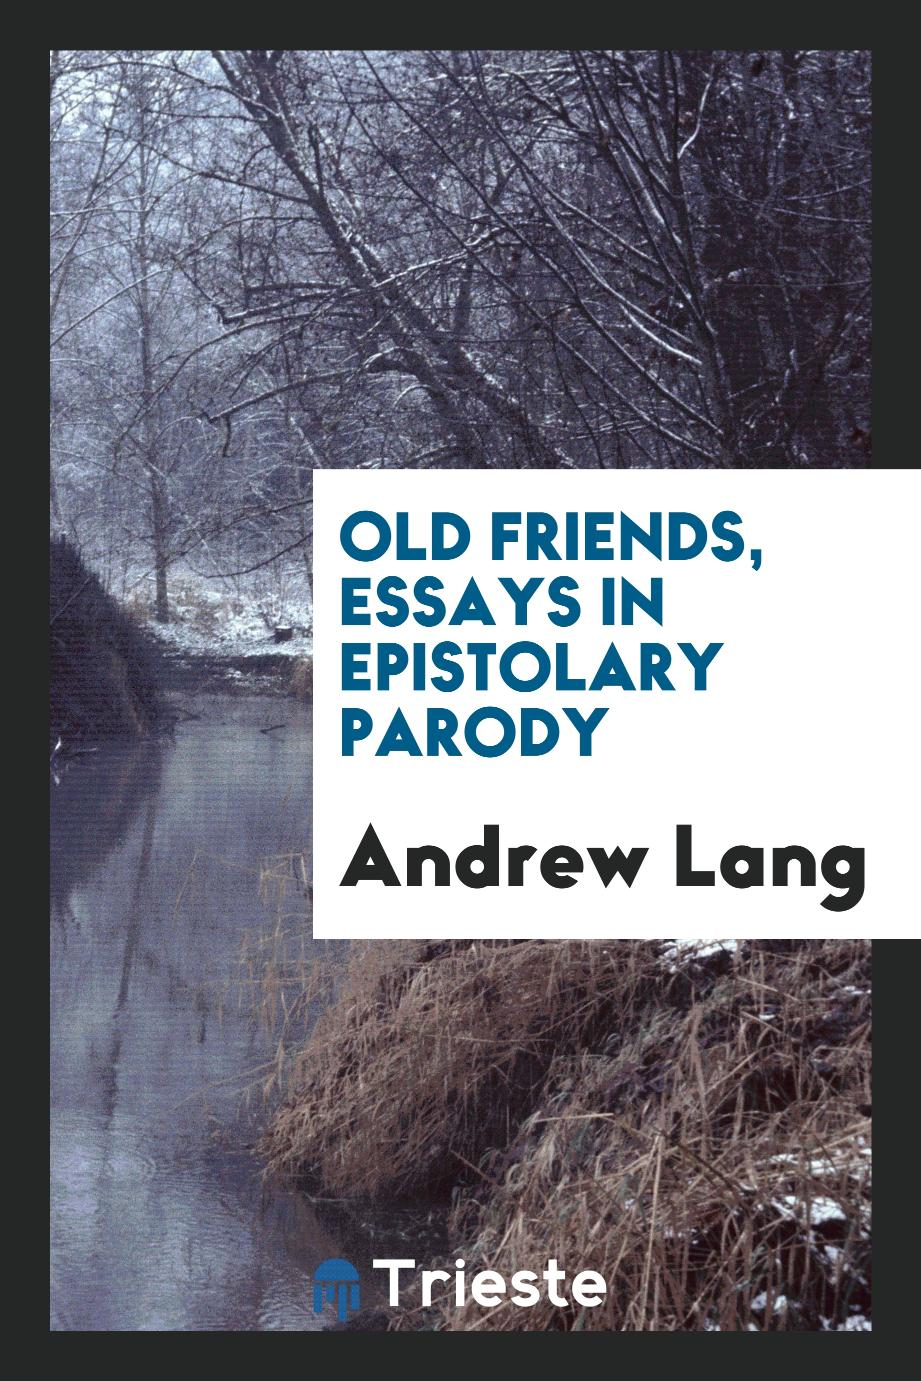 Old friends, essays in epistolary parody